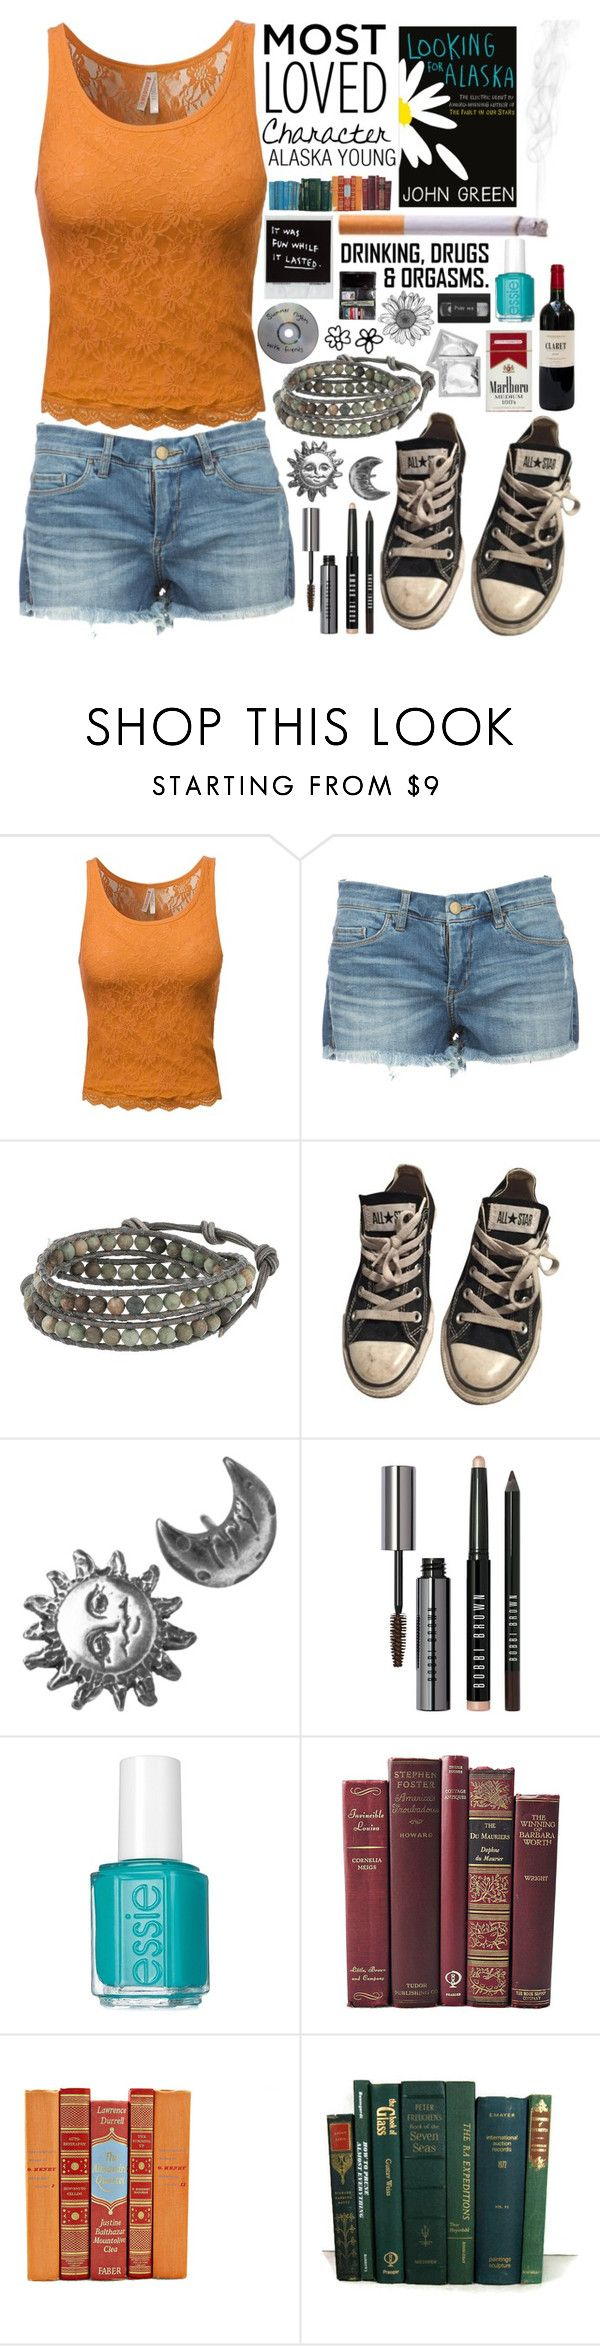 """Alaska Young"" by emily-mp3 ❤ liked on Polyvore featuring mode, Chan Luu, Converse, Stefanie Sheehan Jewelry, Bobbi Brown Cosmetics, Essie, Mother, JohnGreen, lookingforalaska et MostLovedCharacter"